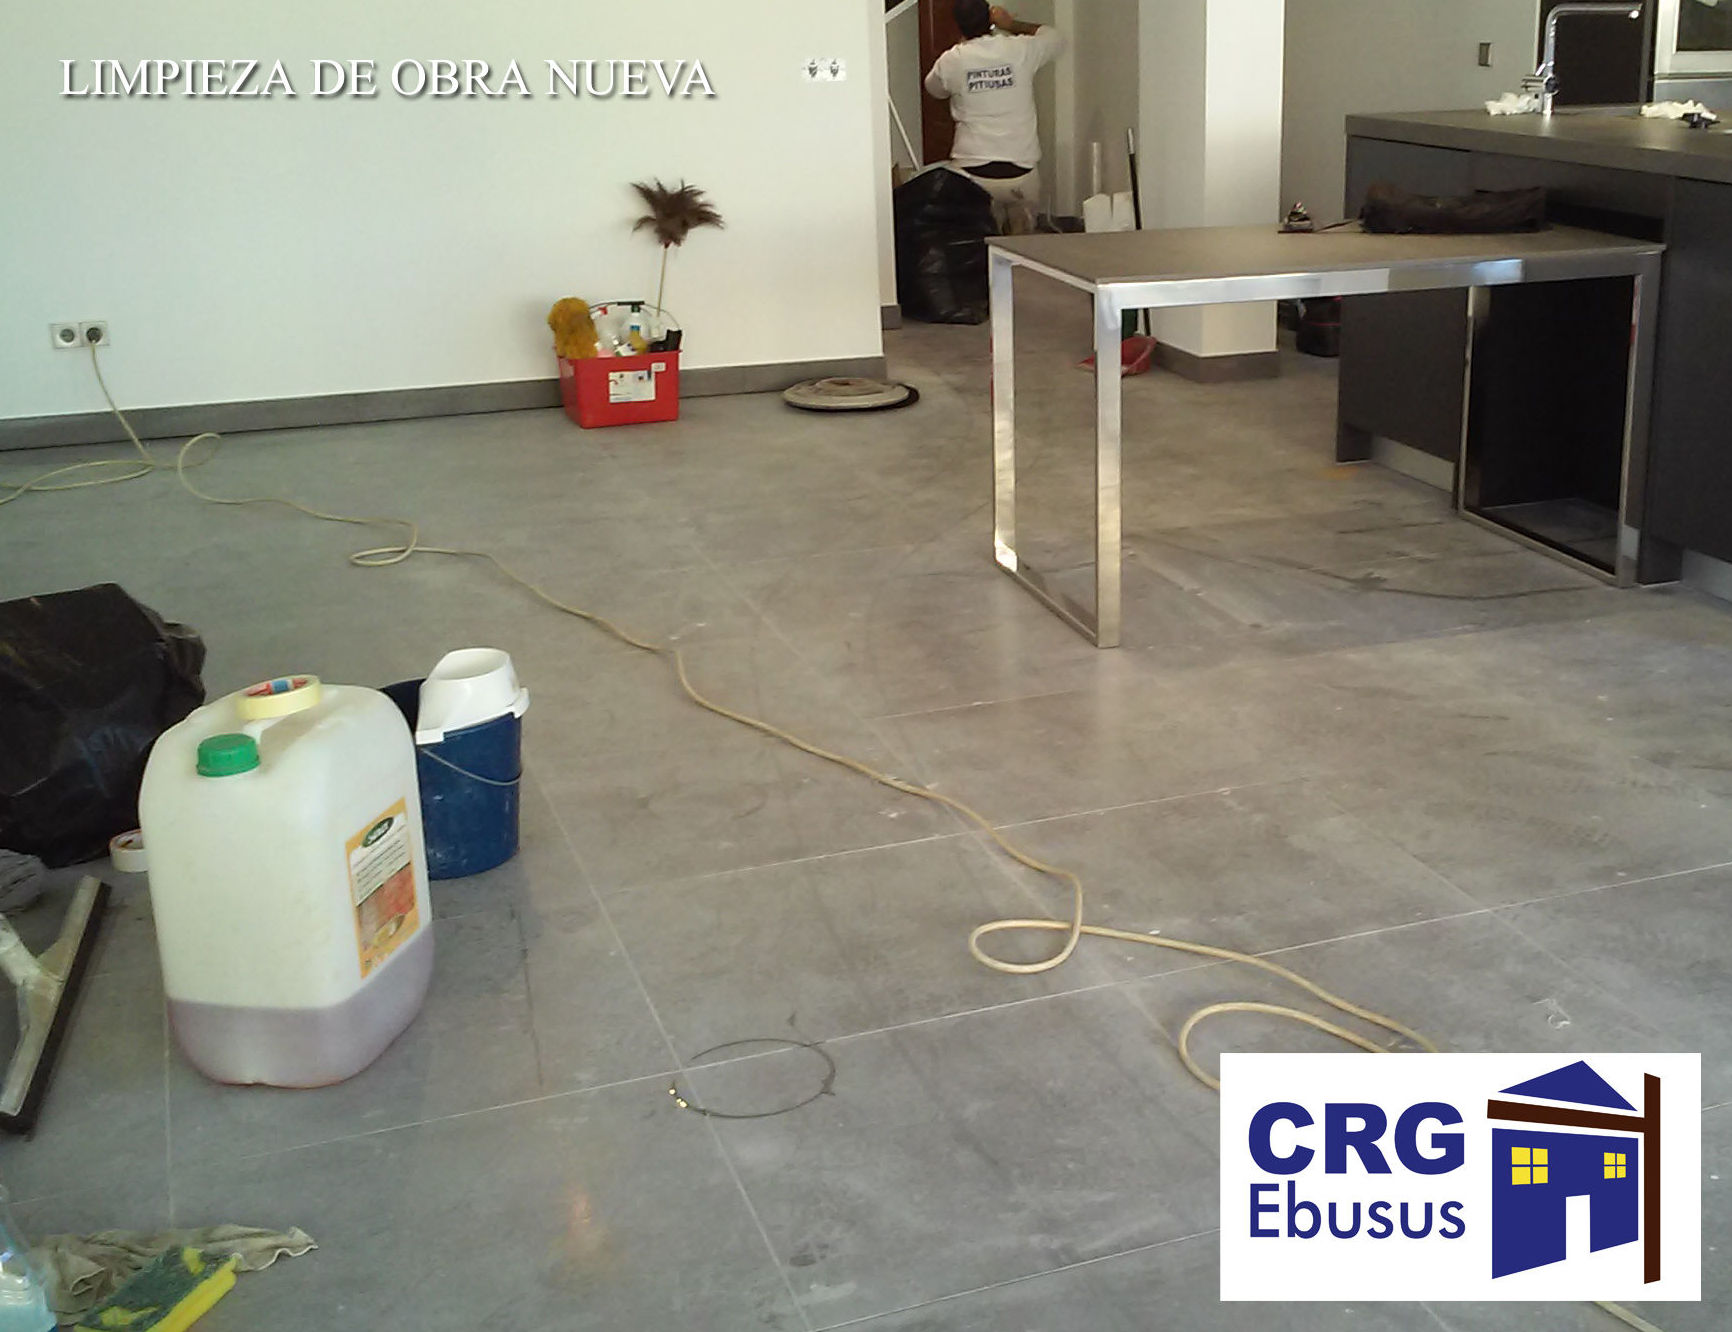 Cleaning service for new construction buildings